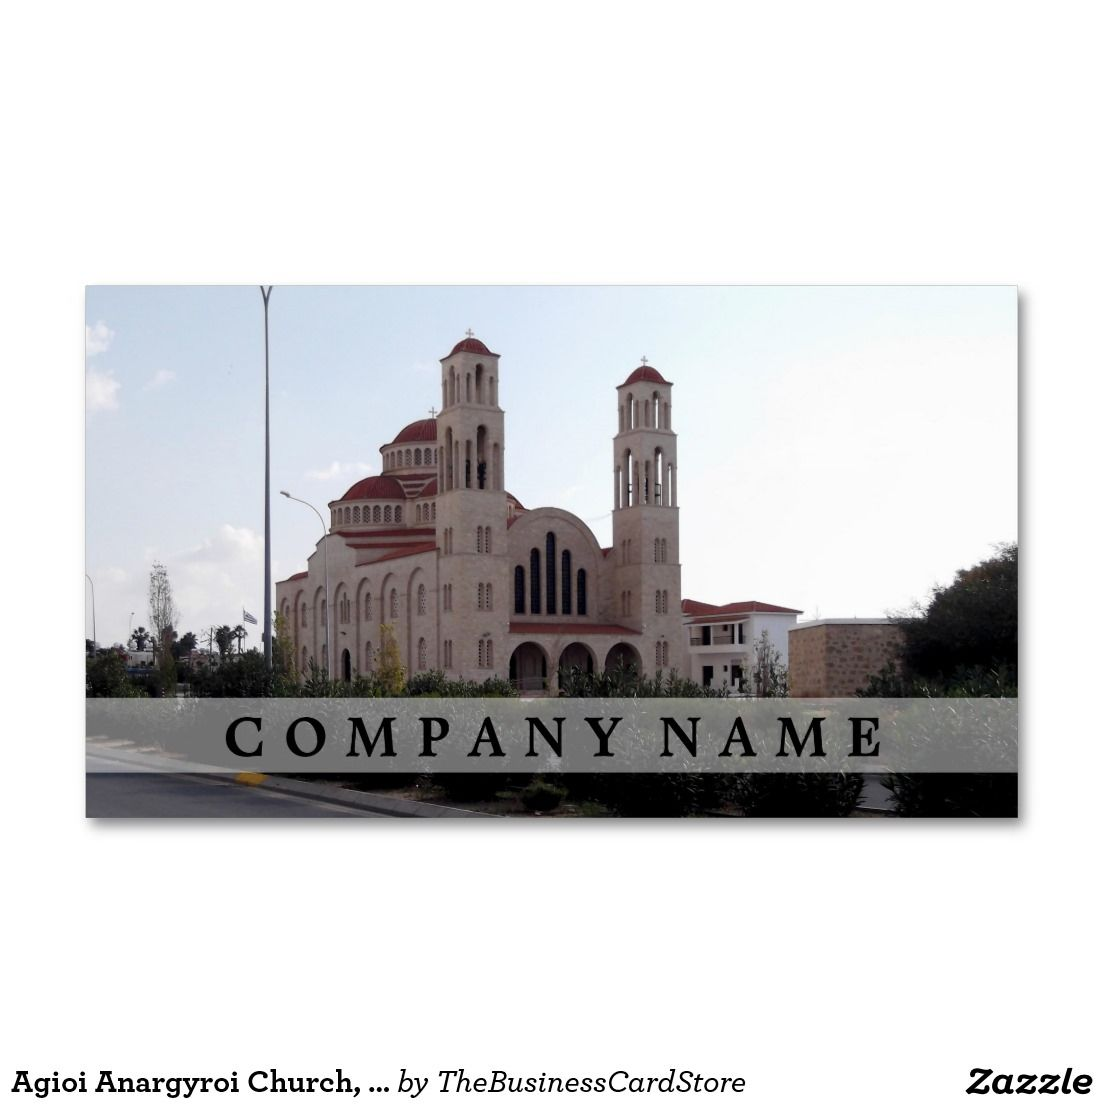 Agioi anargyroi church paphos cyprus business card cypriot and agioi anargyroi church paphos cyprus business card reheart Image collections